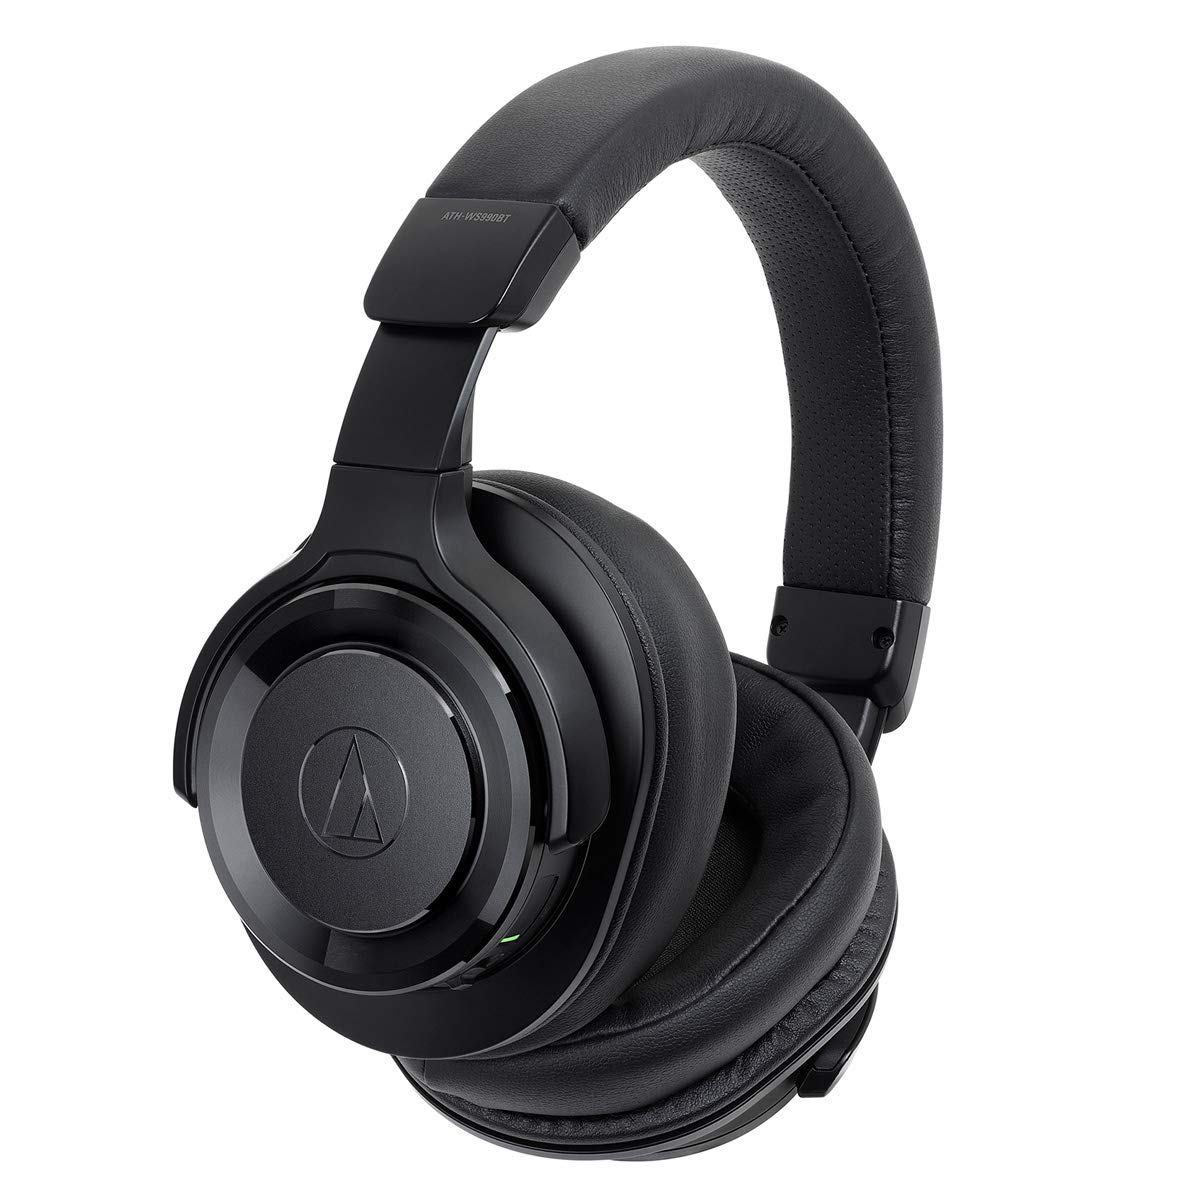 AudioTechnica ATH-WS990BT Wireless High-Resolution Noise-Cancelling Over-Ear Headphones with Built-in Microphone and Control (Black)